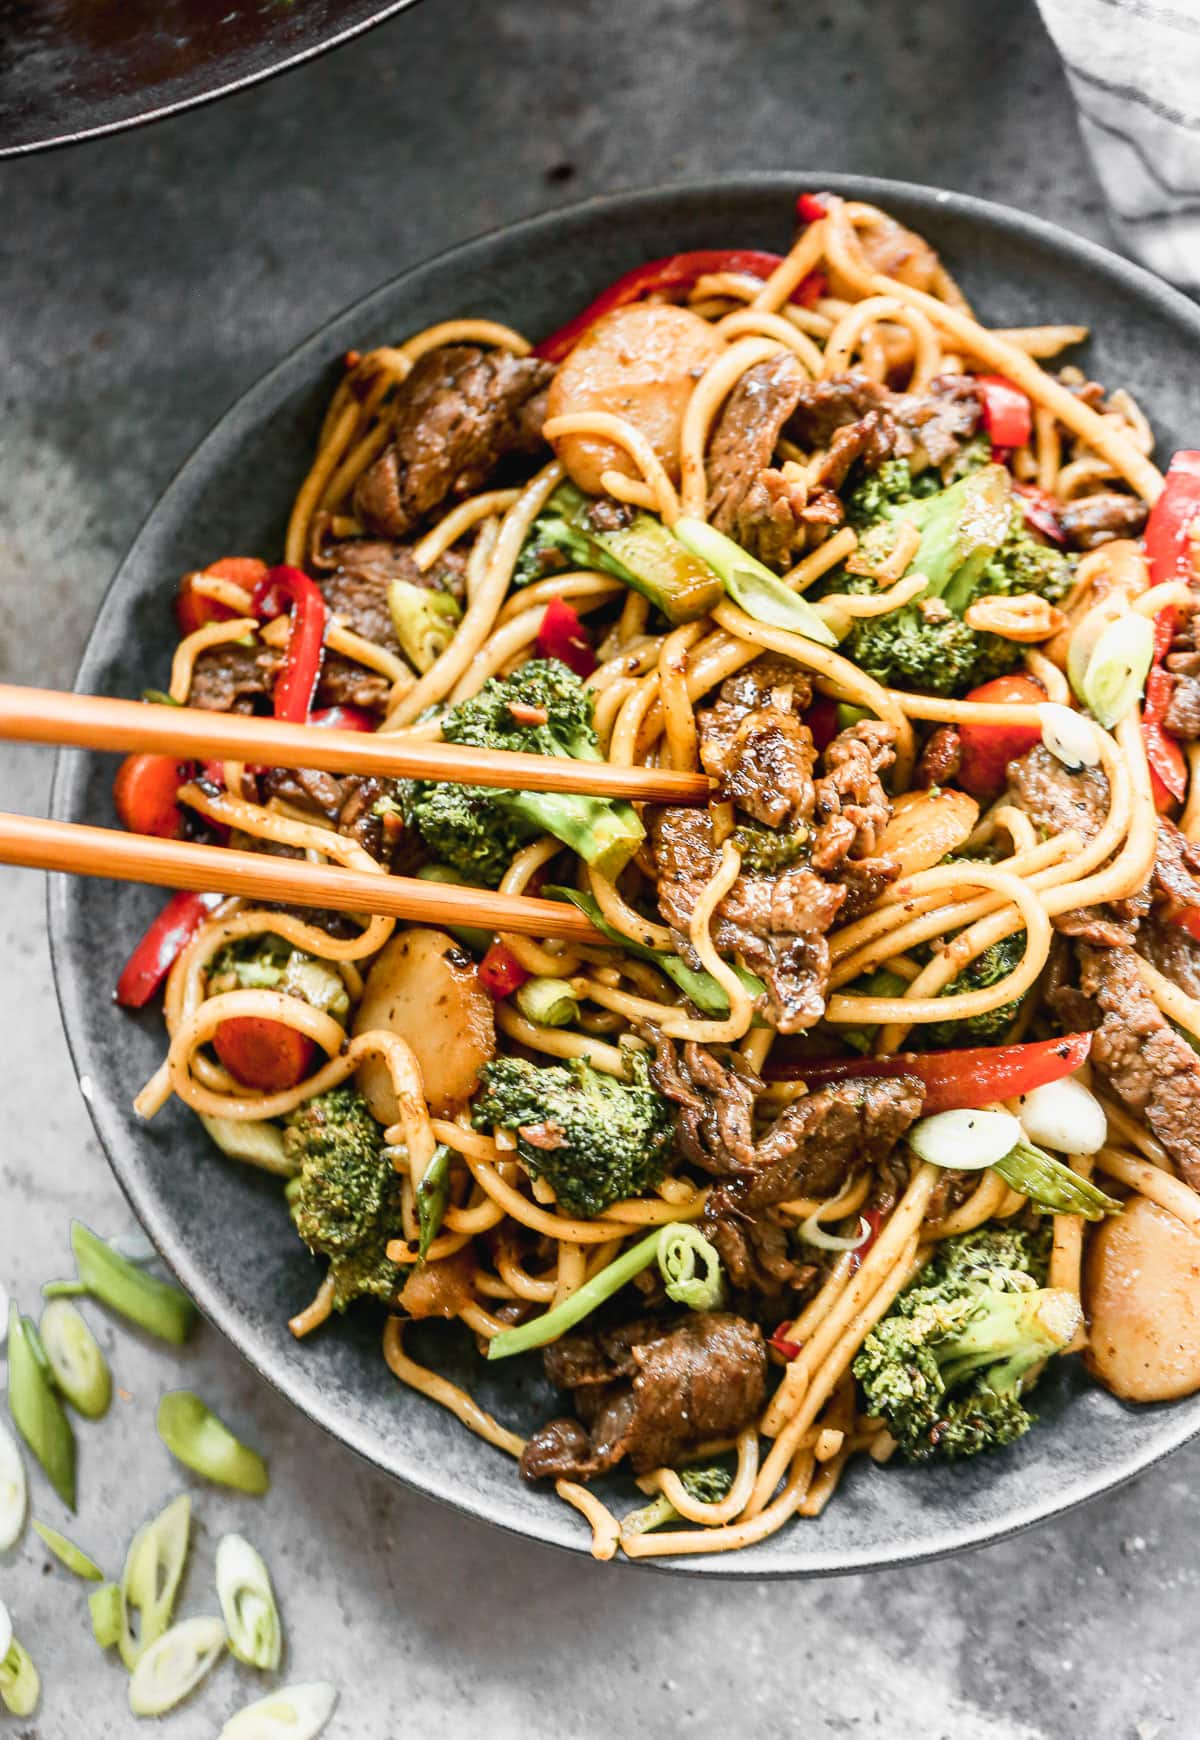 beef lo mein recipe with broccoli on a plate